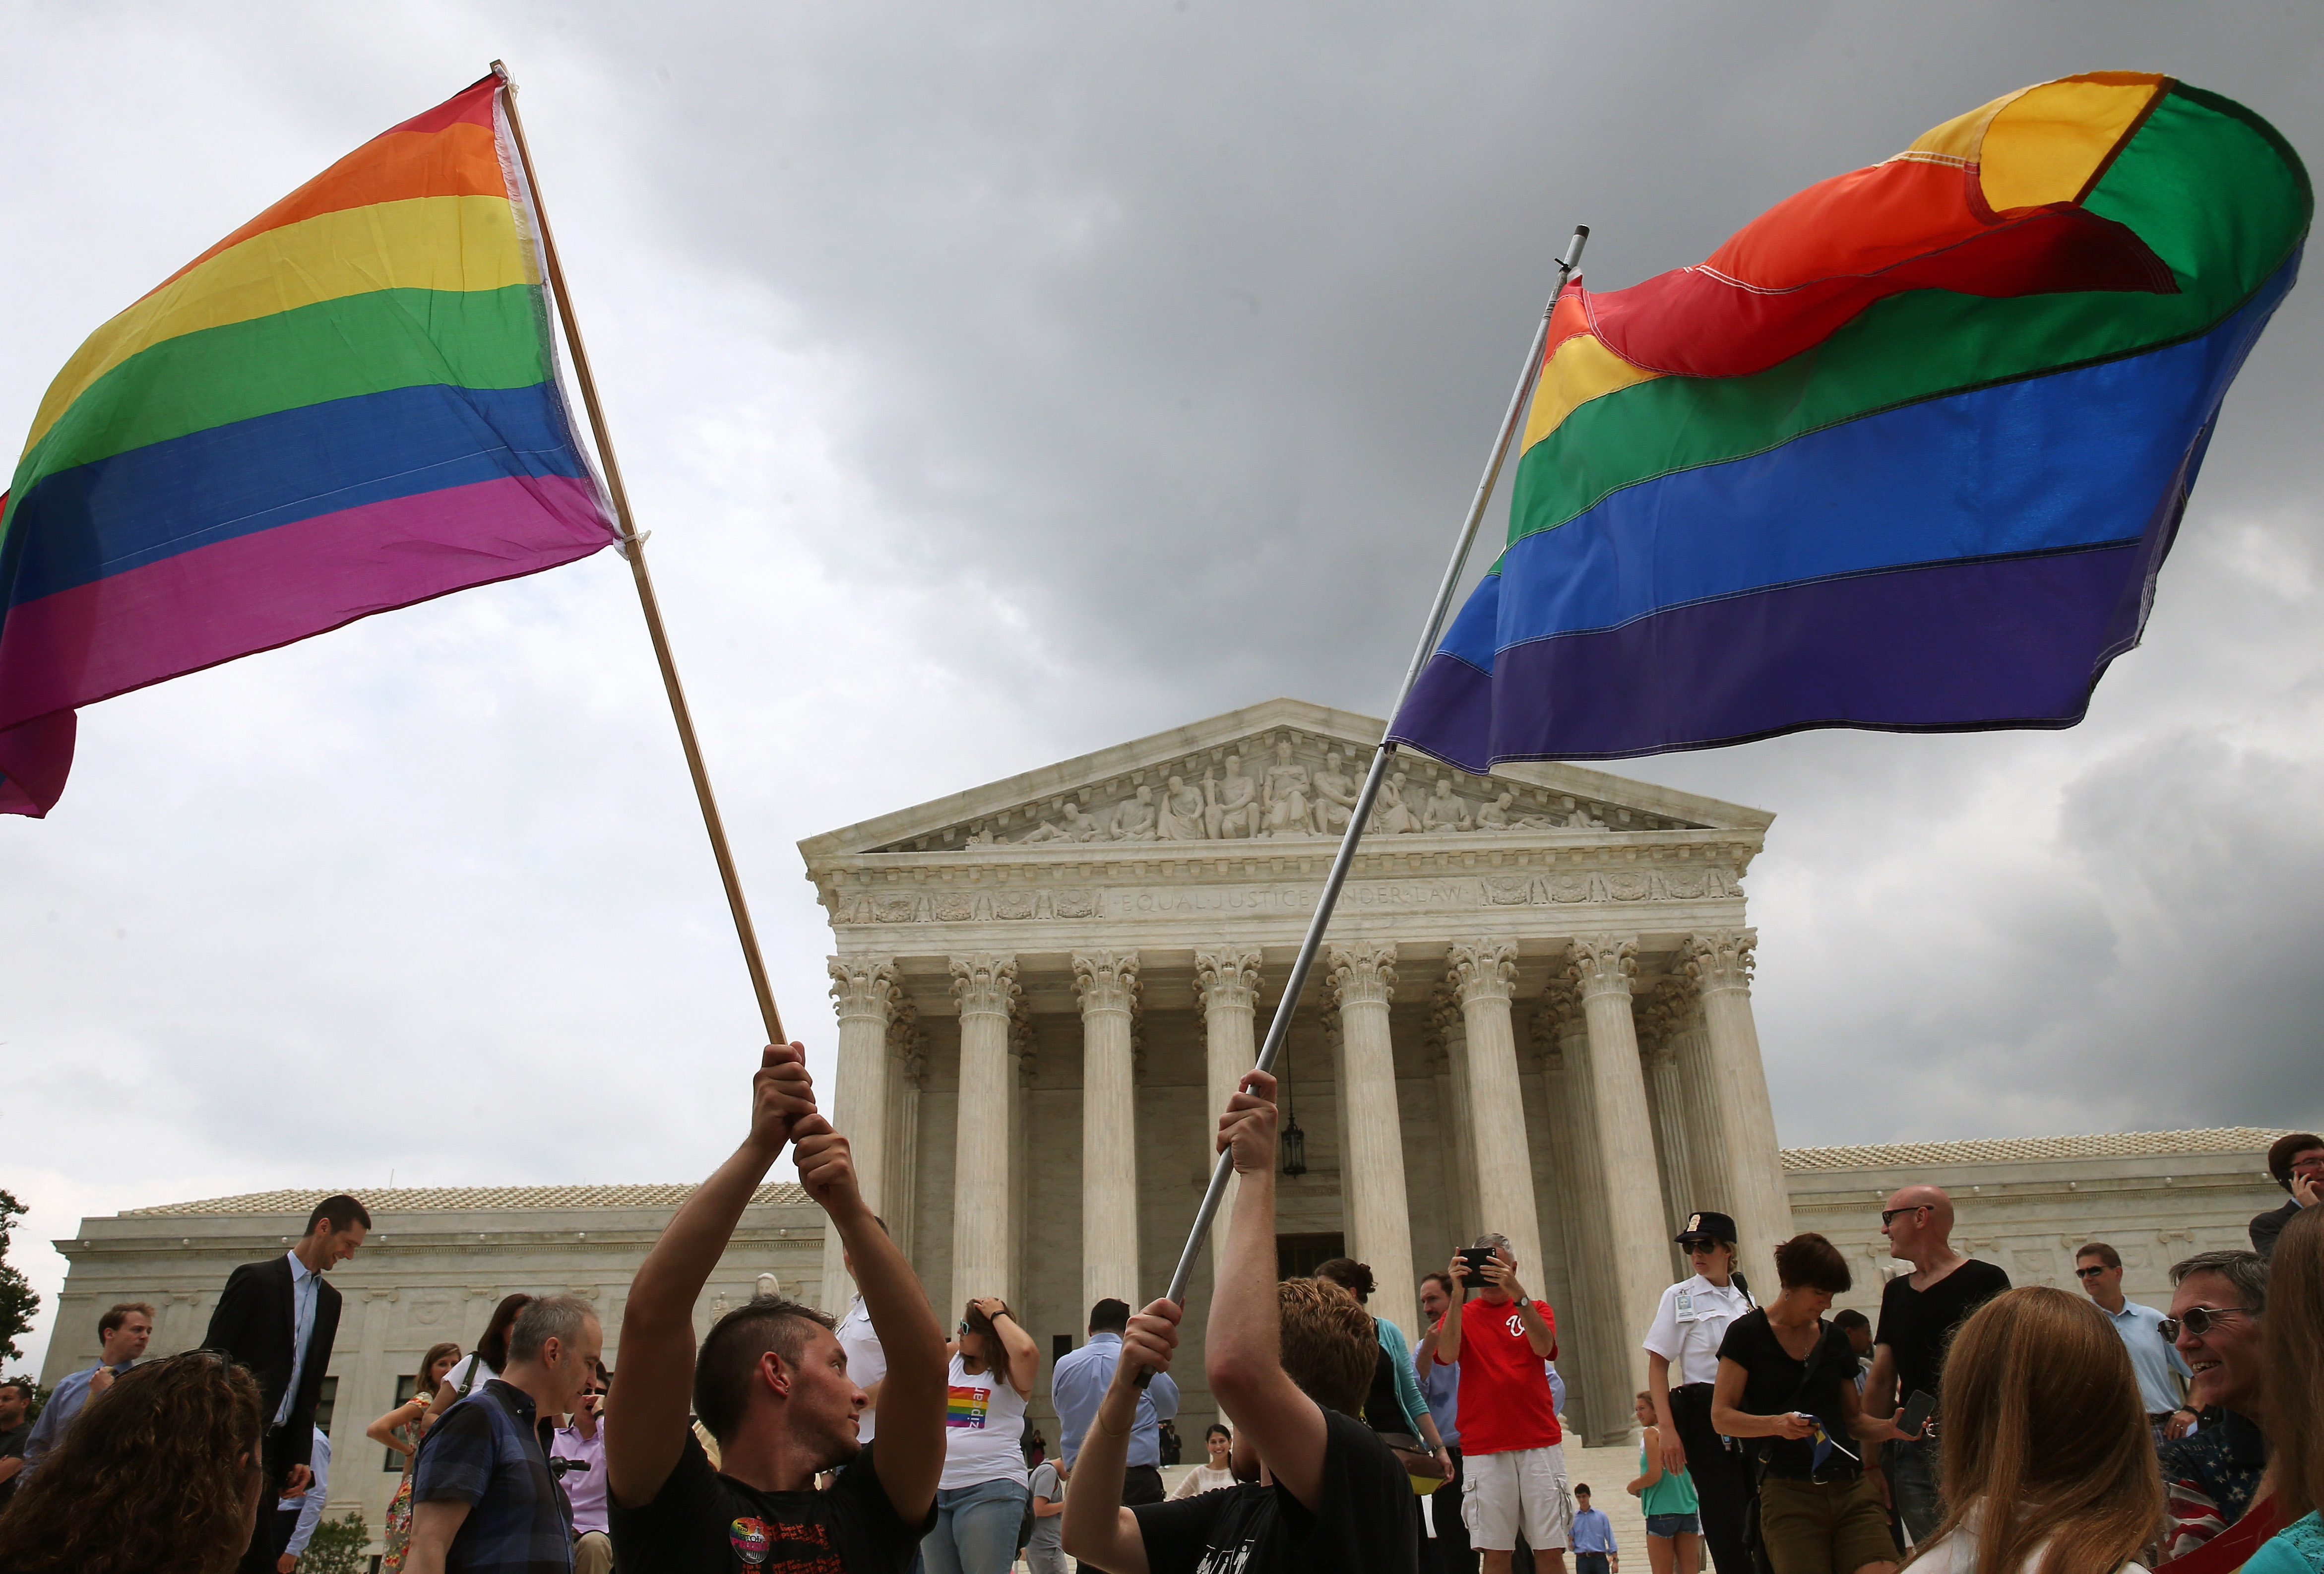 People celebrate in front of the U.S. Supreme Court after the ruling in favor of same-sex marriage June 26, 2015 in Washington, DC.